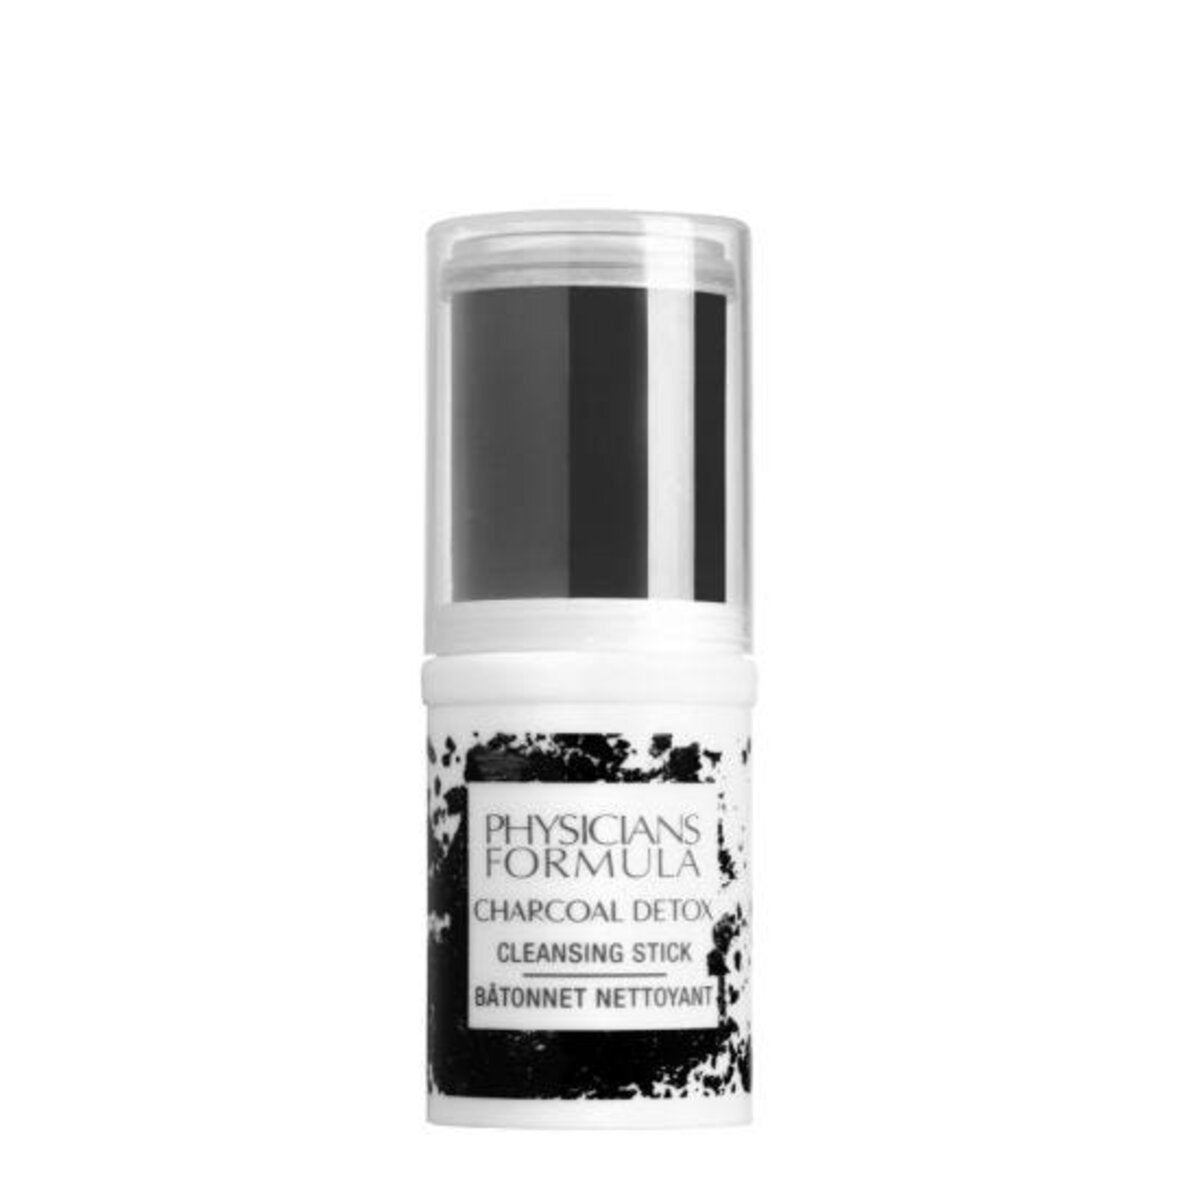 CHARCOAL DETOX CLEANSING STICK - PHYSICIANS FORMULA